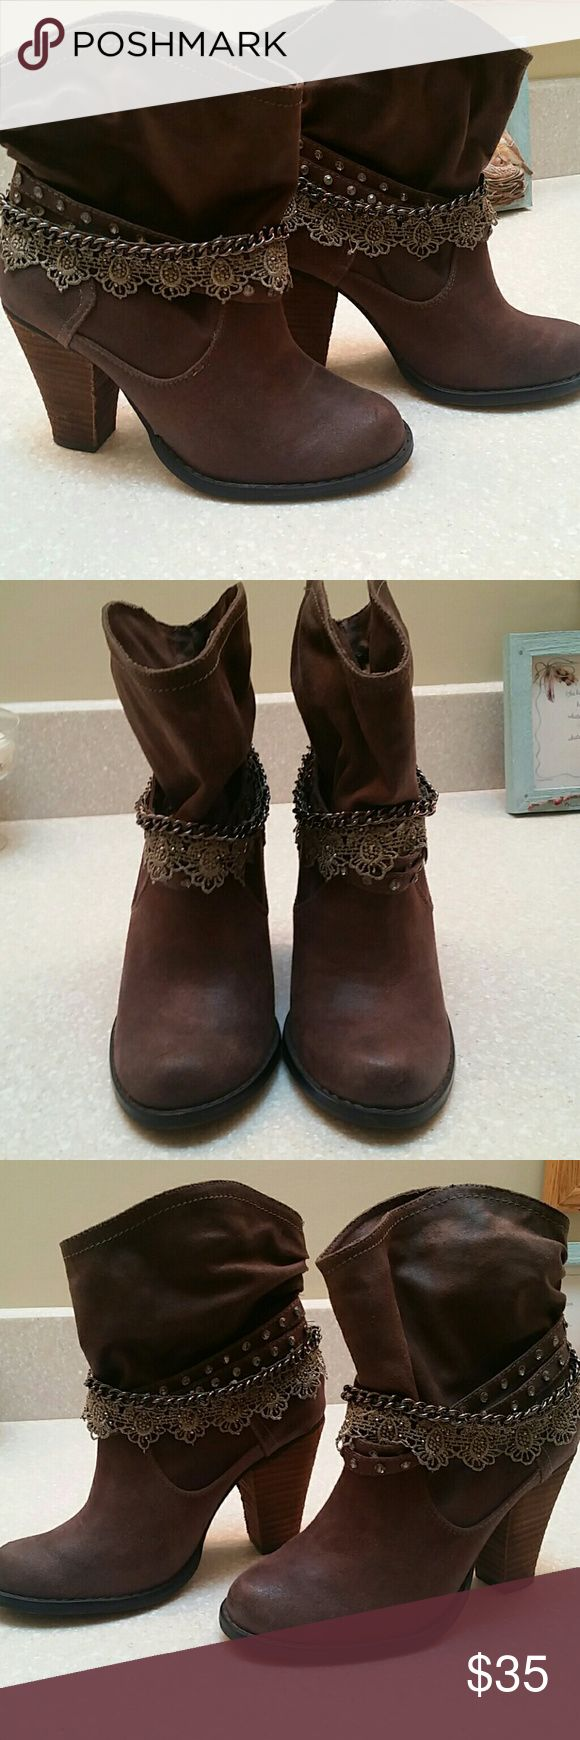 Not Rated Booties Not Rated booties in excellent condition, worn once. No stains, tears, etc. Low heel makes these very comfortable to wear and can be worn with jeans or shorts. Not Rated Shoes Ankle Boots & Booties